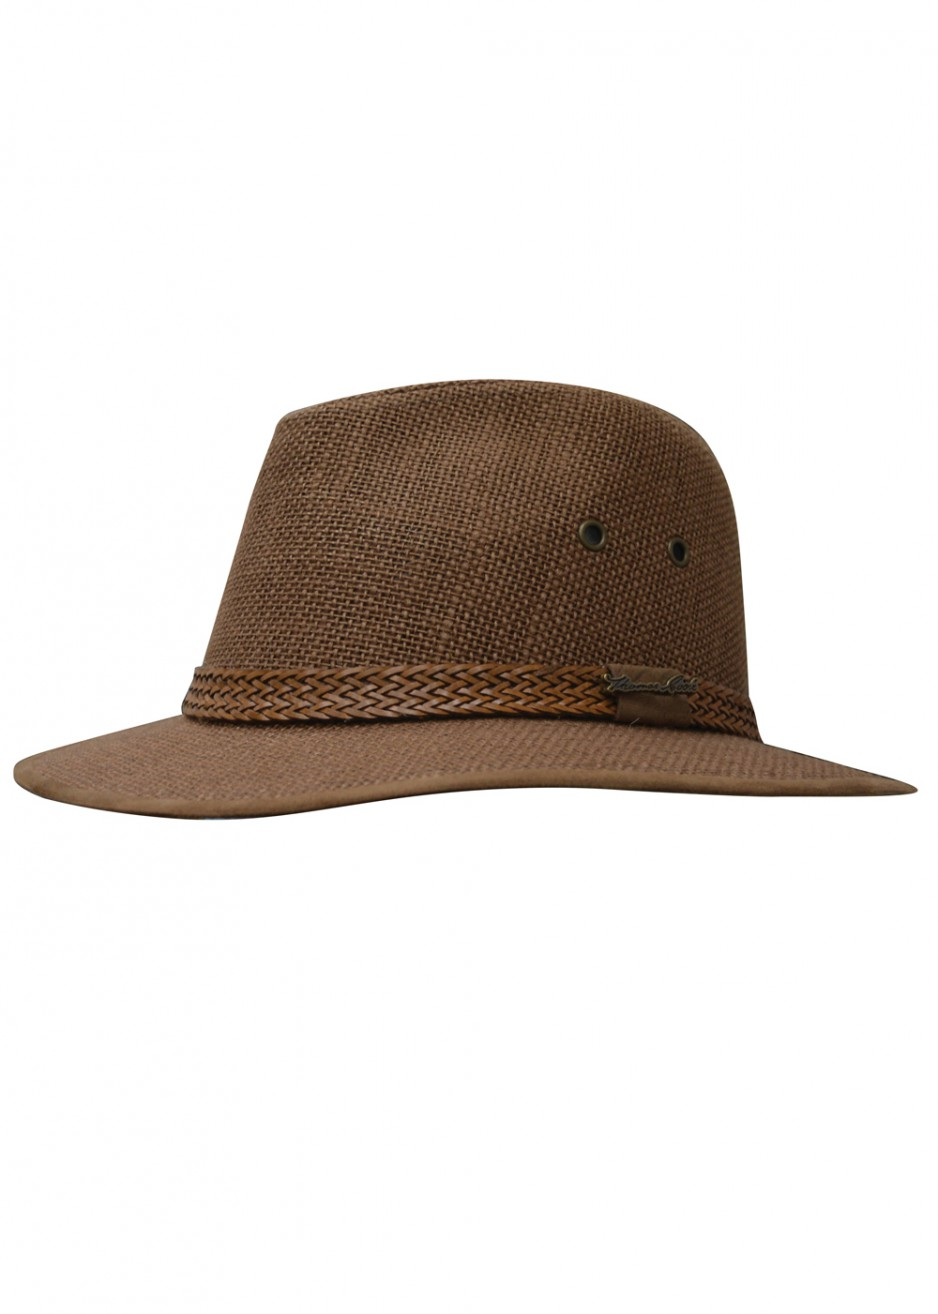 BROOME HAT